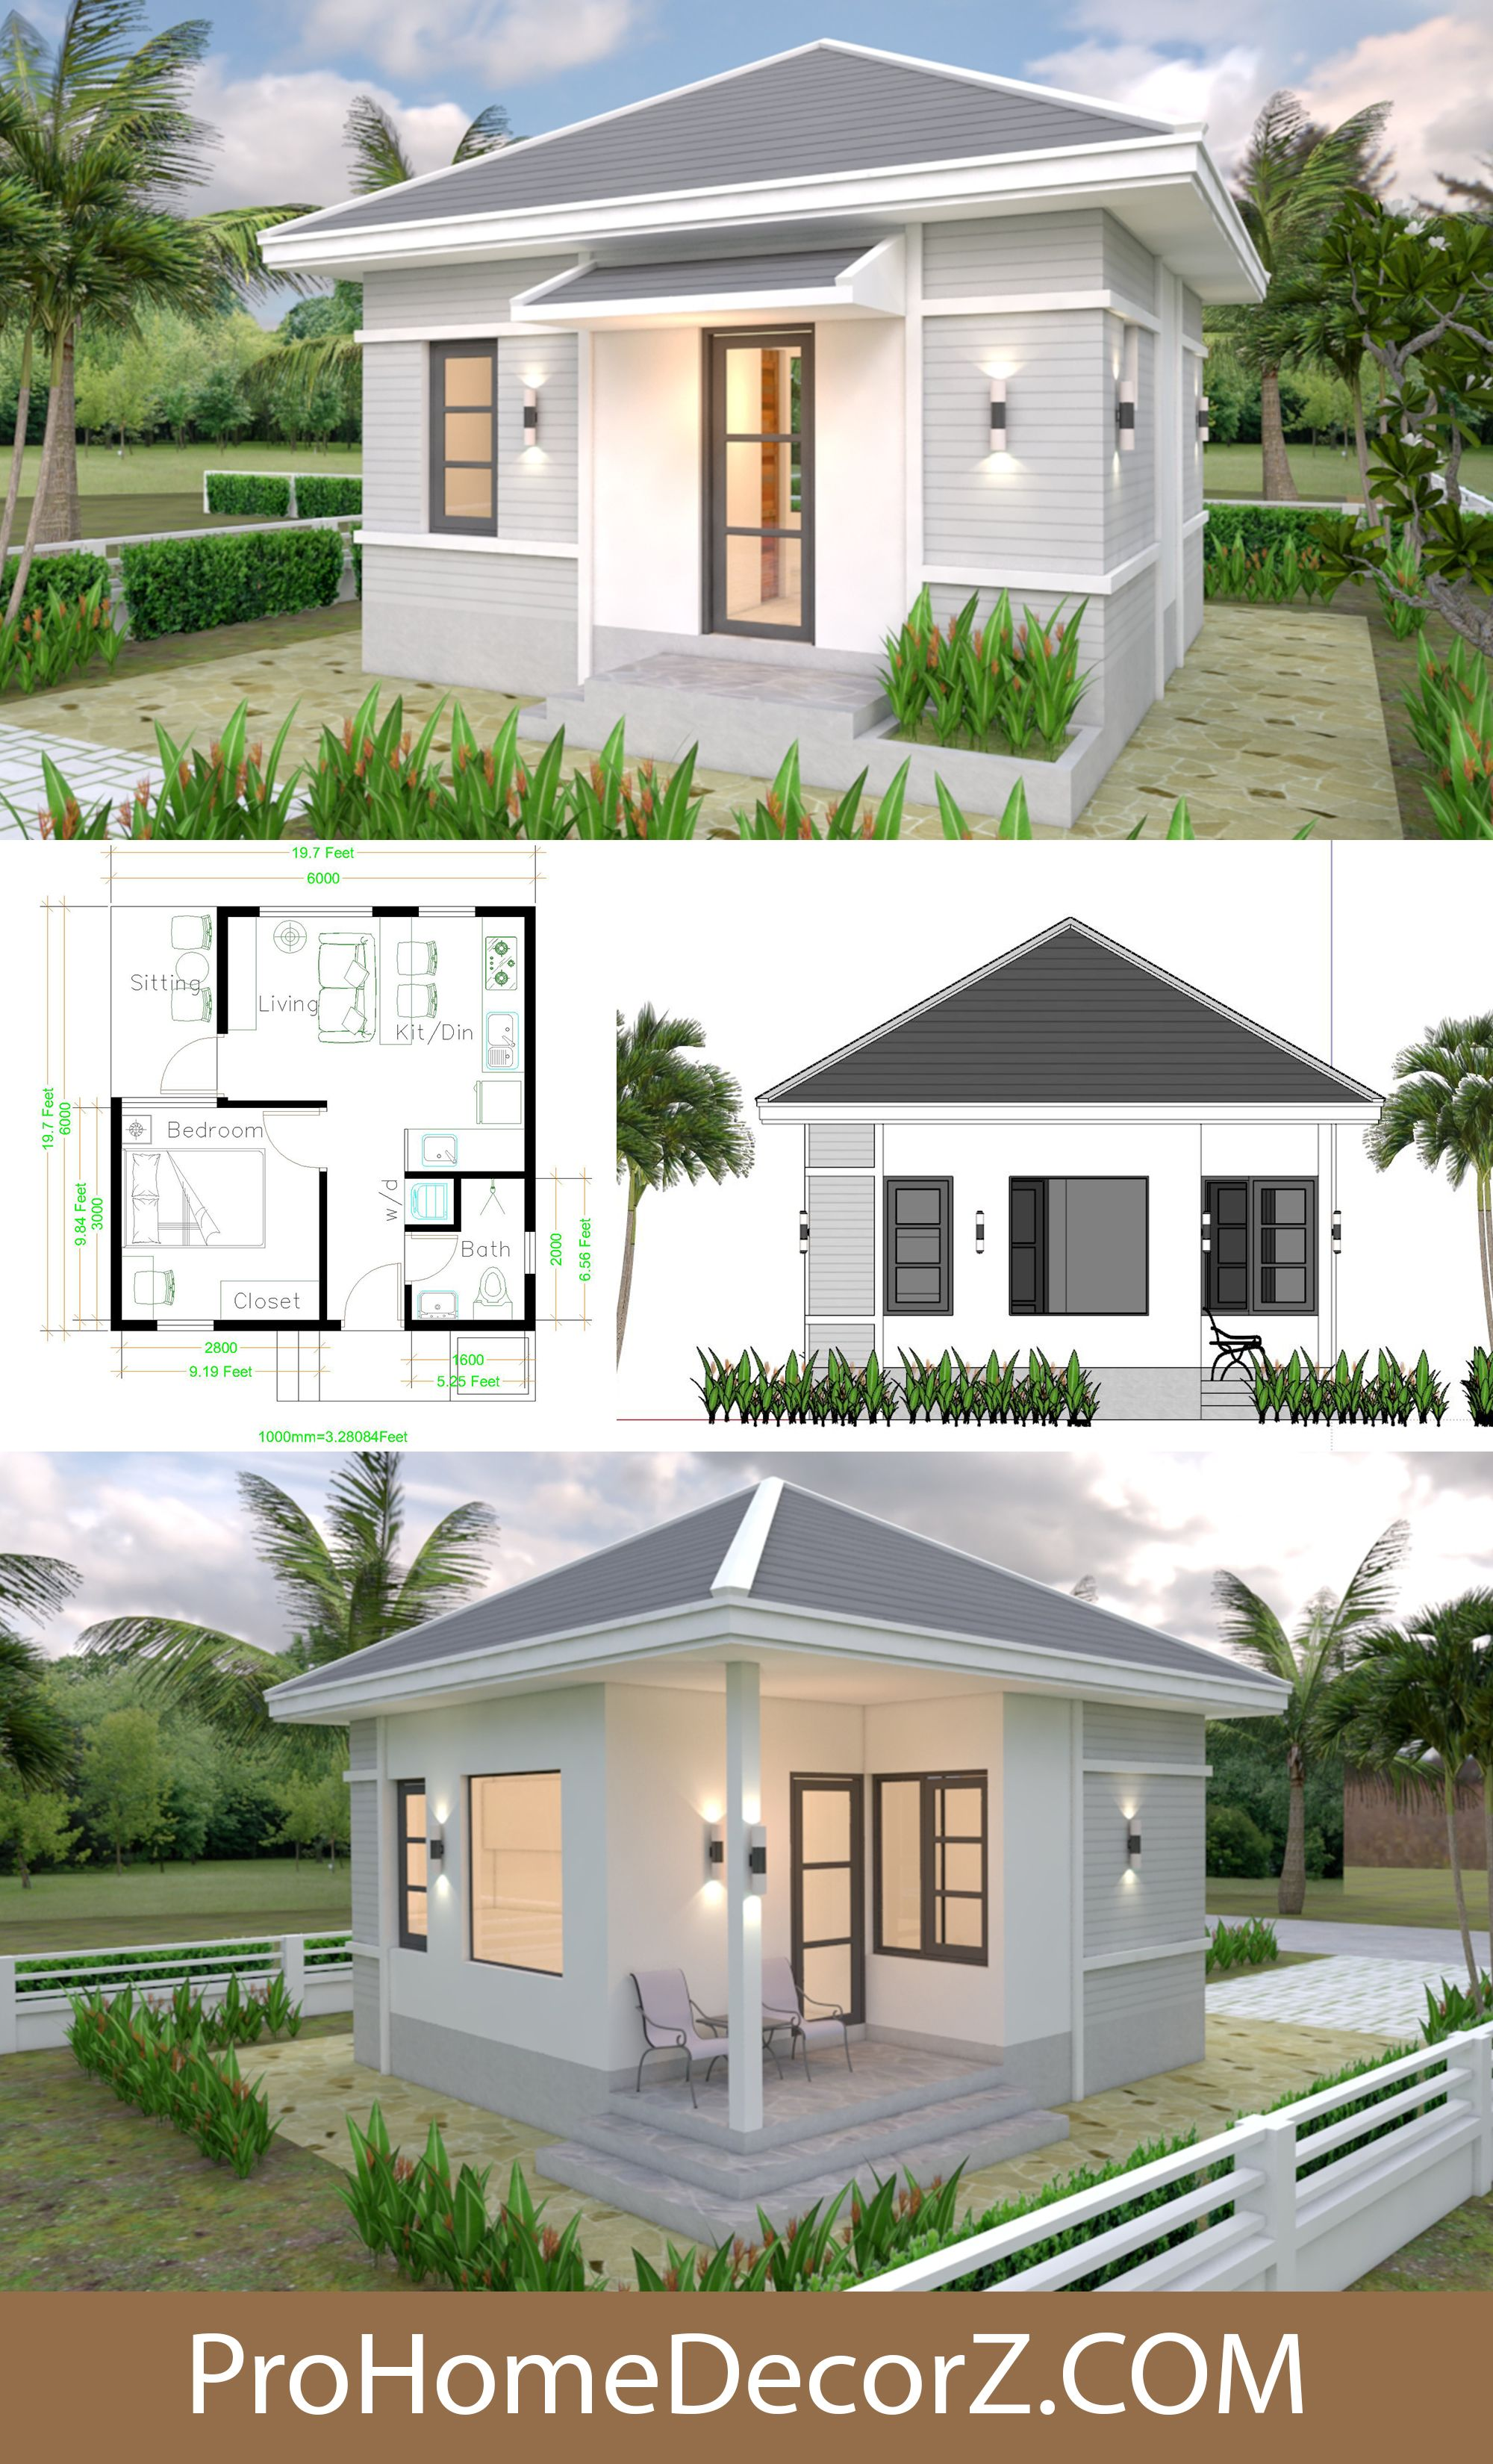 Custom Tiny Homes 6x6 With Hip Roof In 2020 Hip Roof Tiny House Small House Design